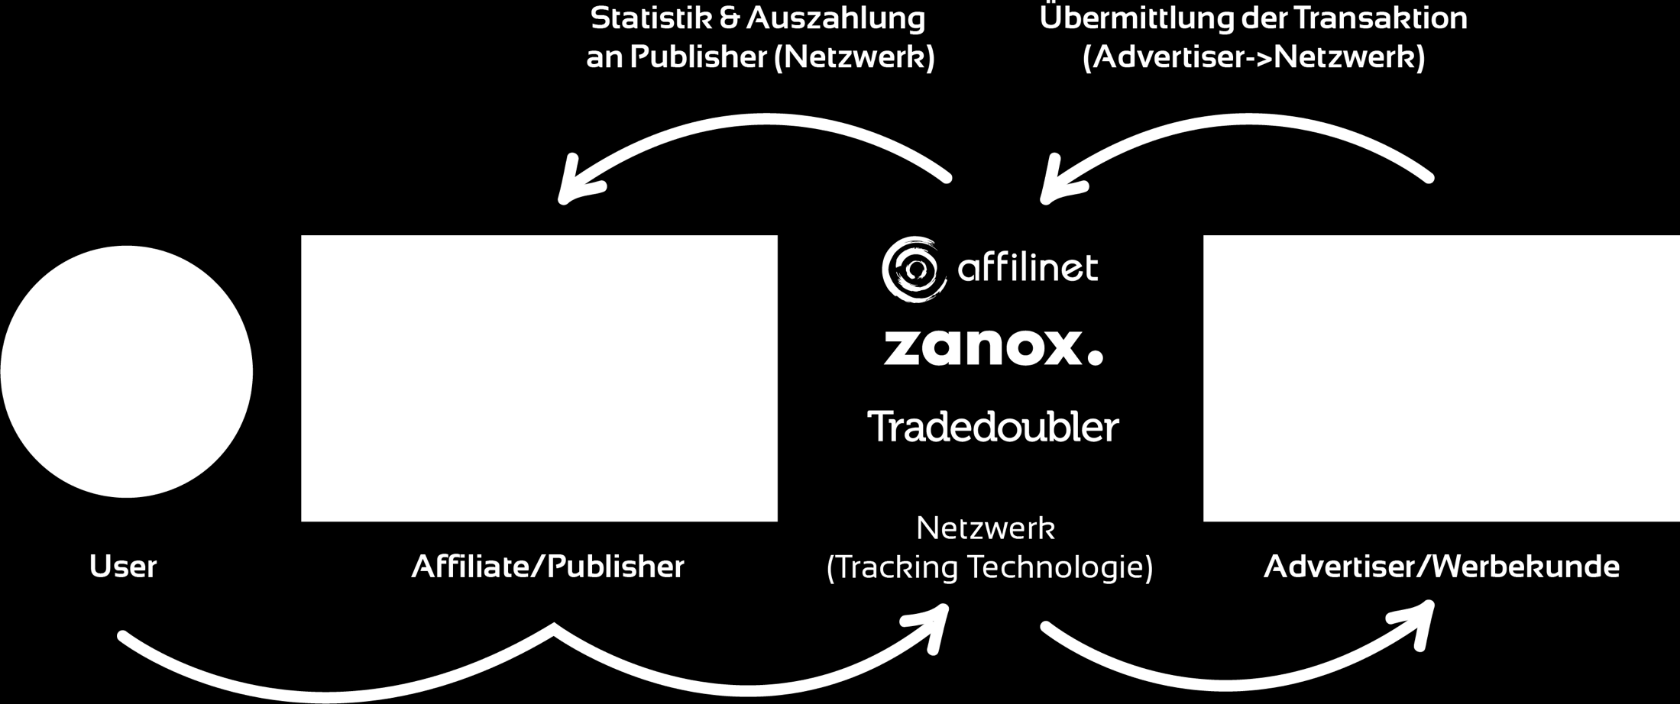 Affiliate-Marketing kurz erklärt Affiliate-Marketing ist eine internetbasierte Vertriebslösung, bei der zumeist ein kommerzieller Anbieter (Advertiser/Werbekunde) seine Vertriebspartner